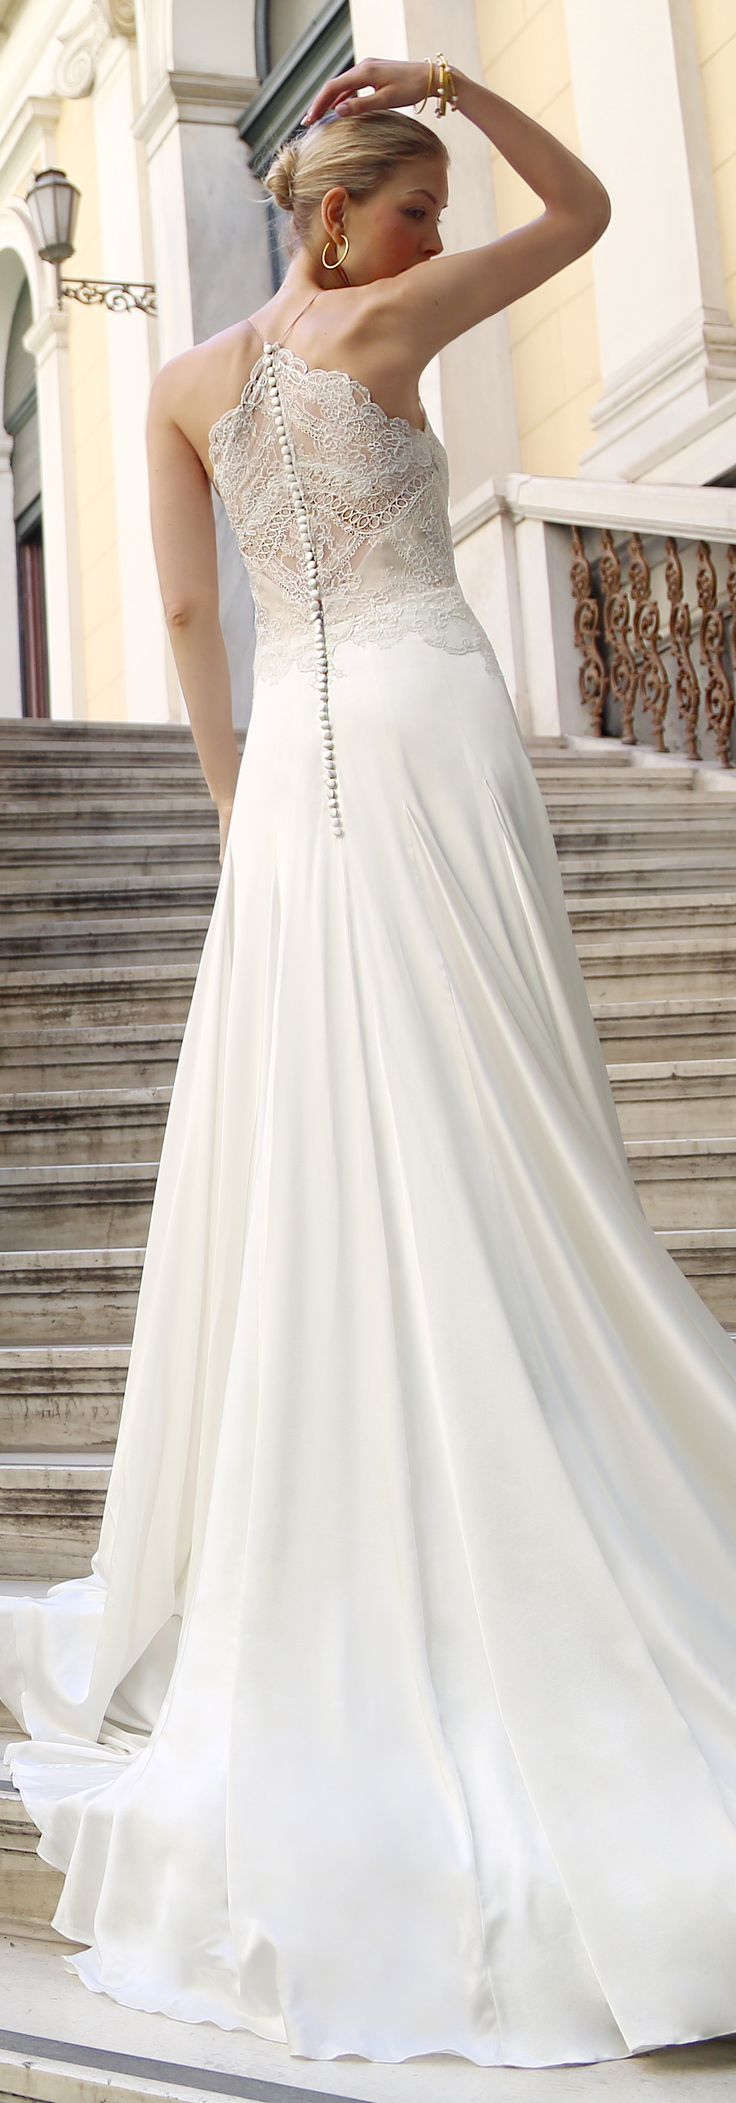 945 best Brautkleid images on Pinterest | Bridle dress, Amazing ...